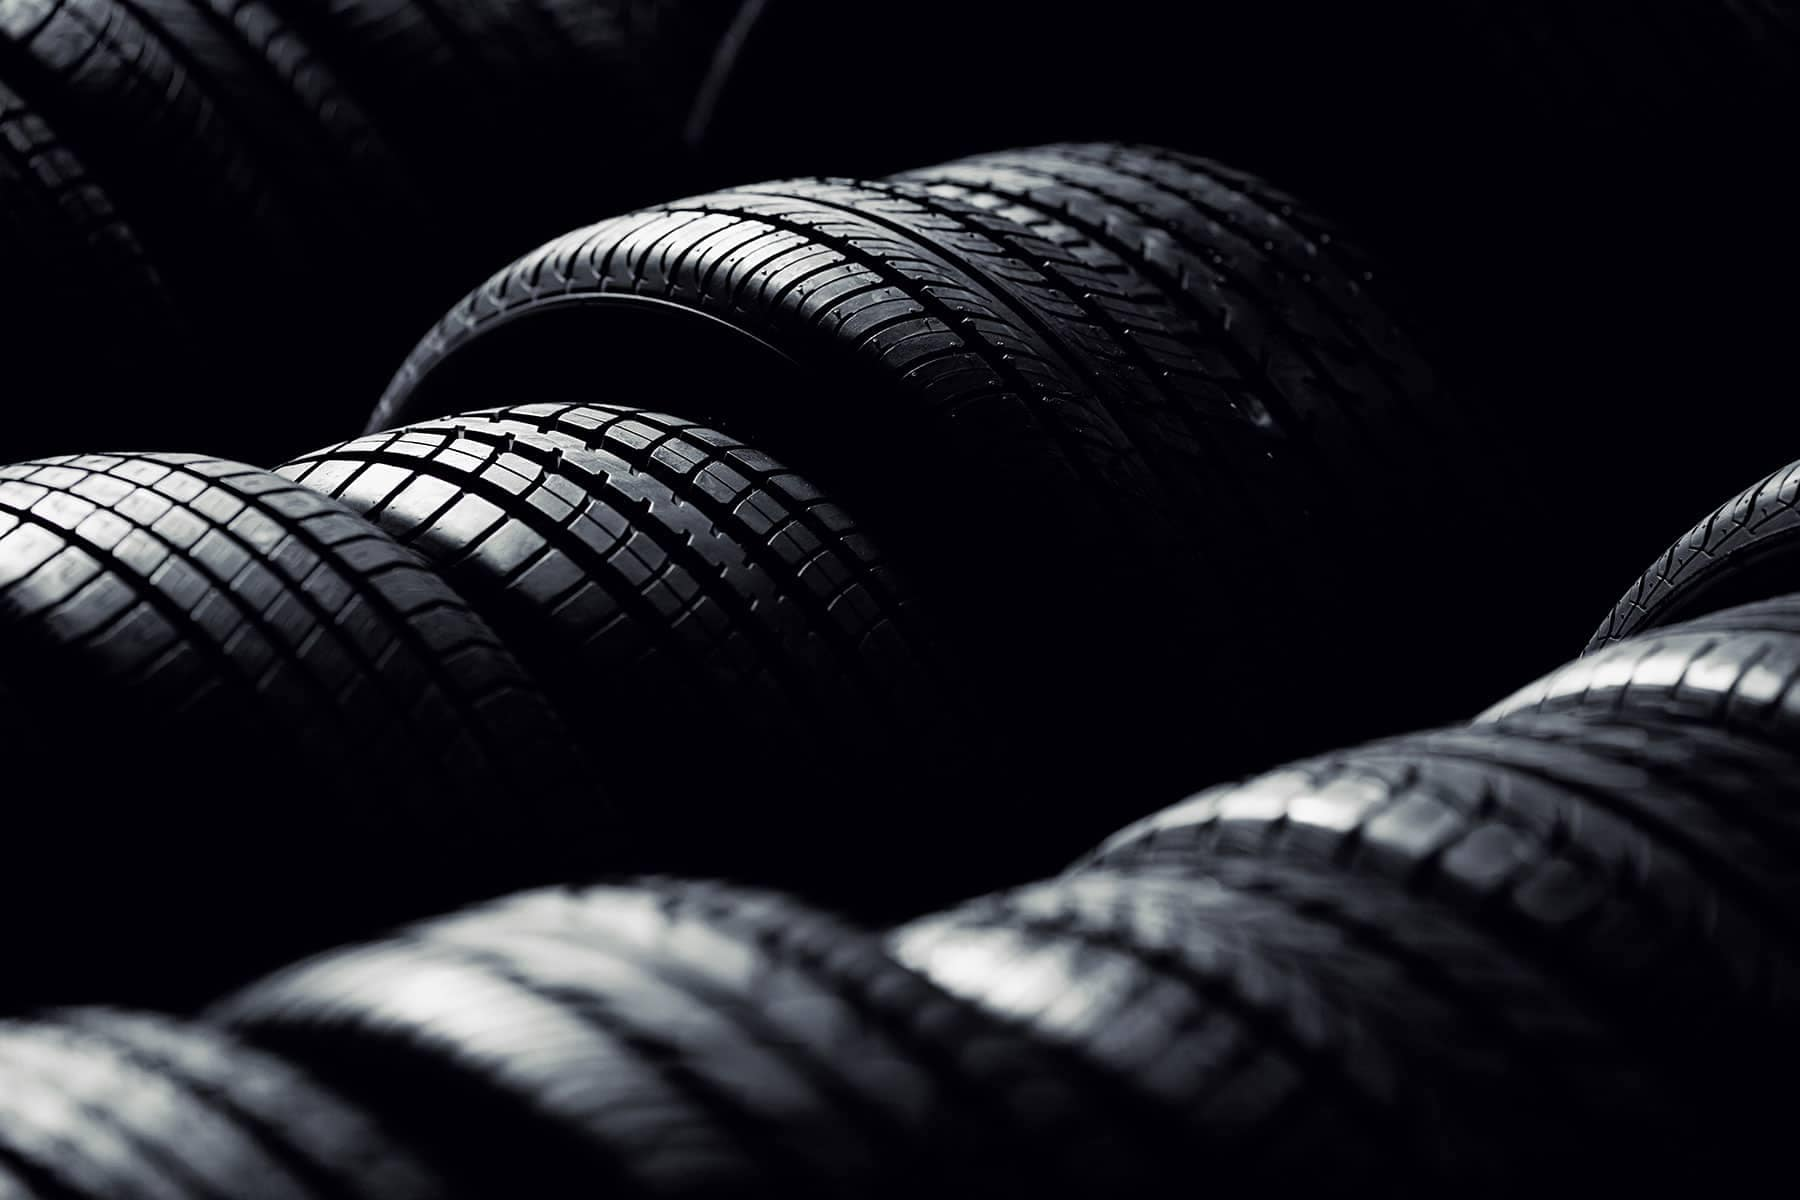 rows of car tires